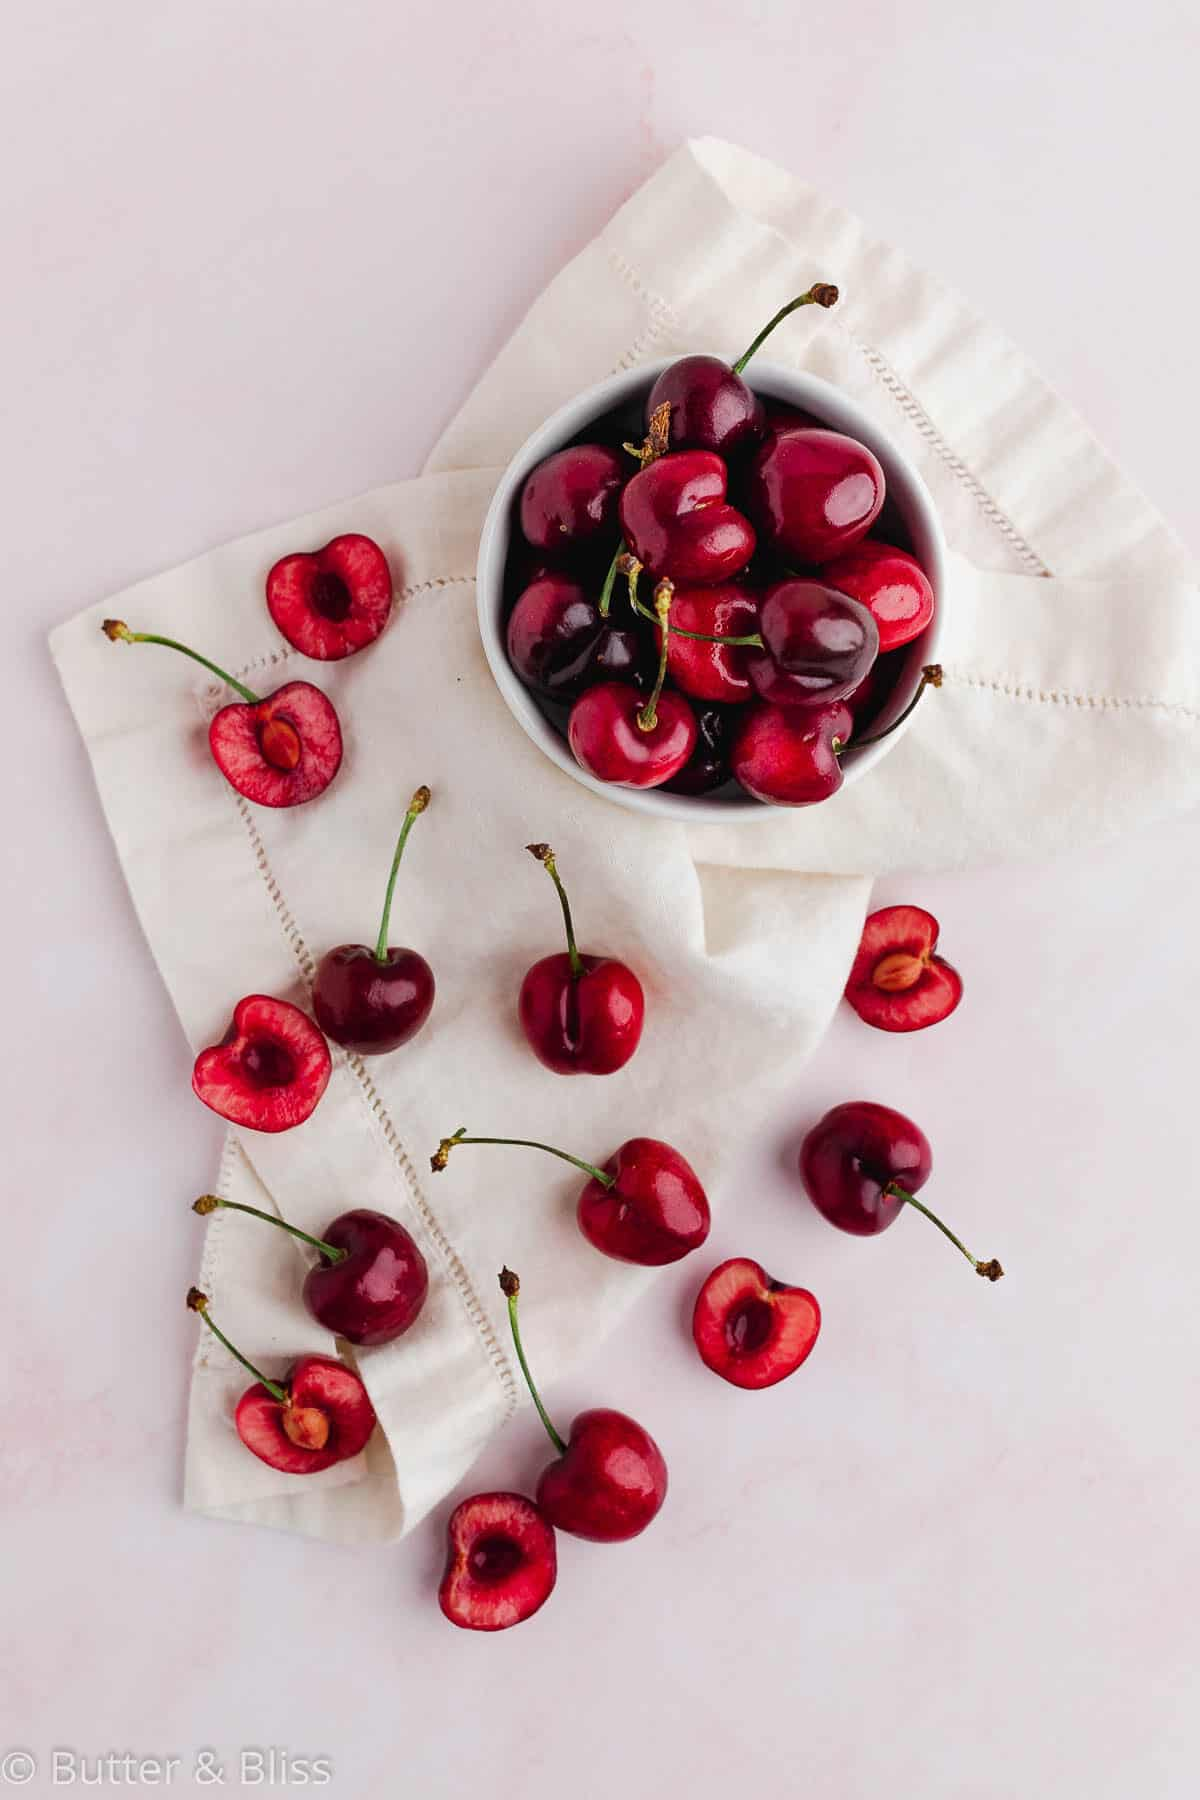 Fresh cherries on a table